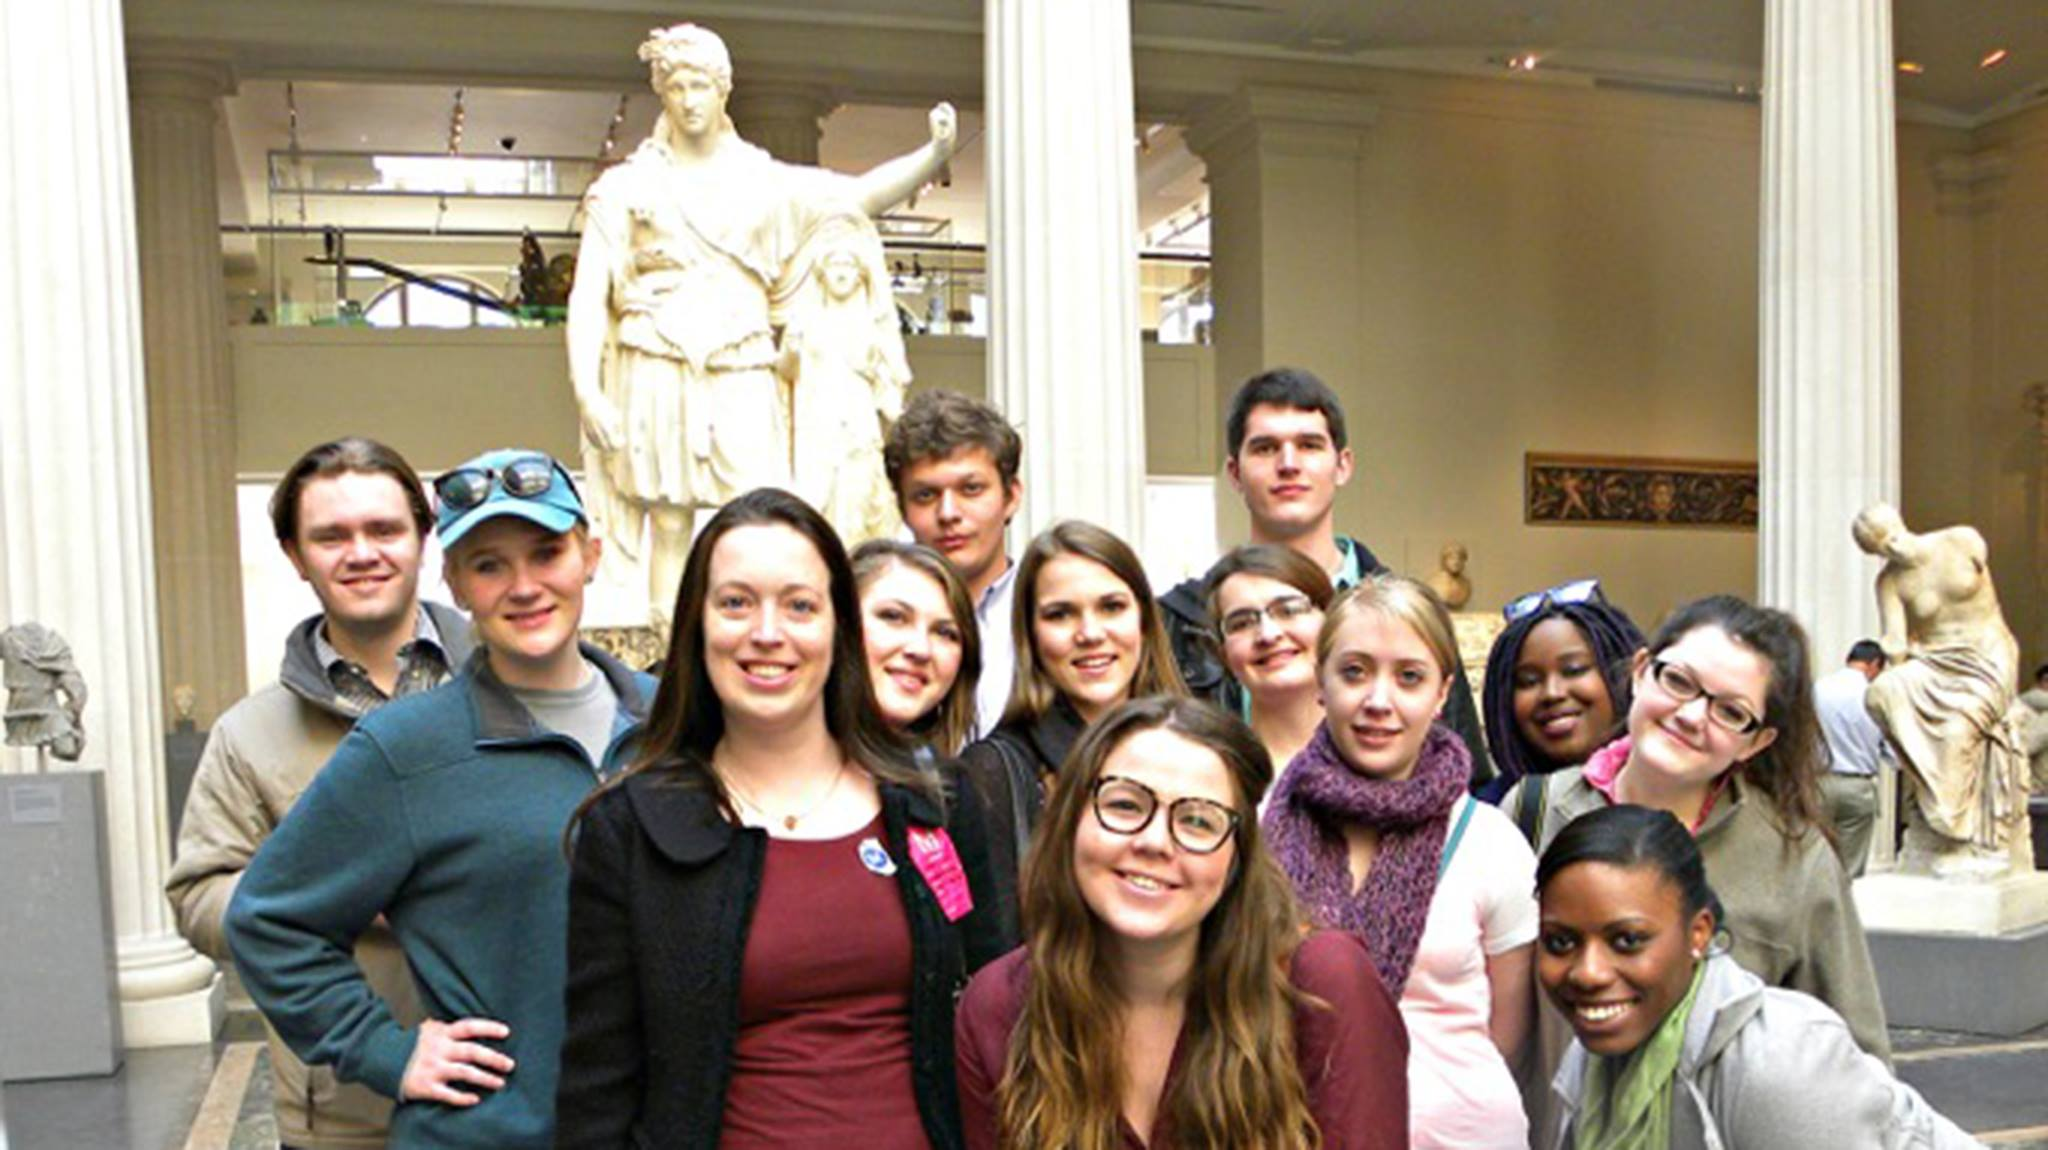 classics class studying antiquities took an educational trip to New York over spring break.